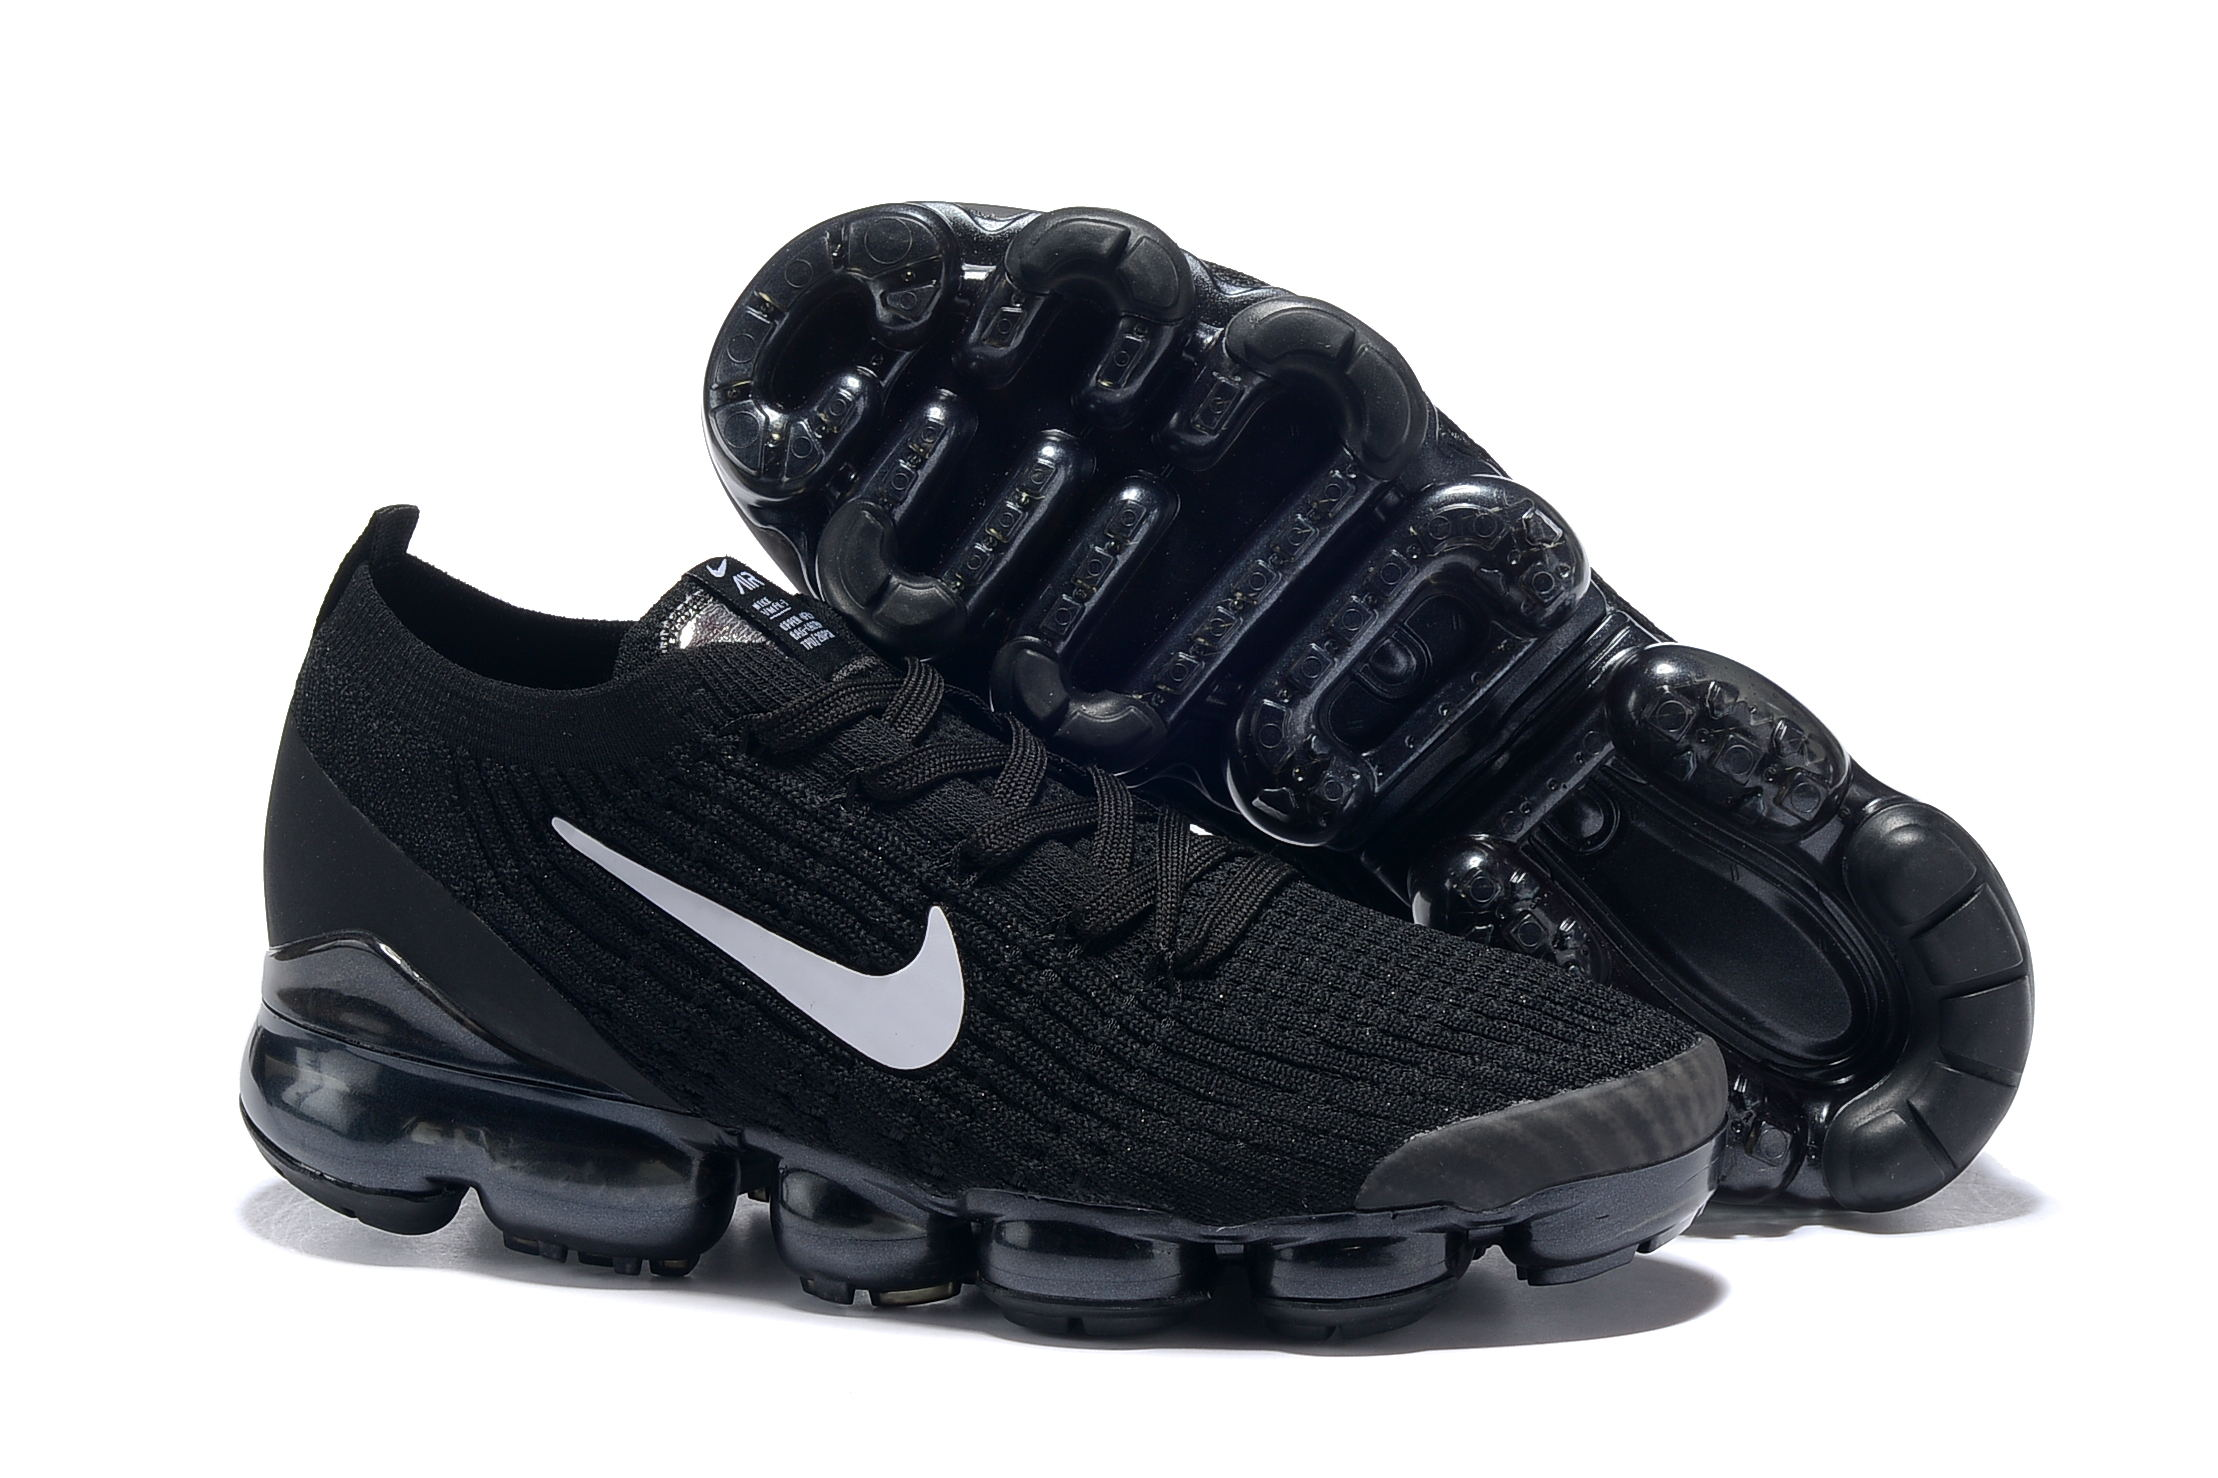 2019 Women Nike Air VaporMax Flyknit 3.0 Black White Shoes